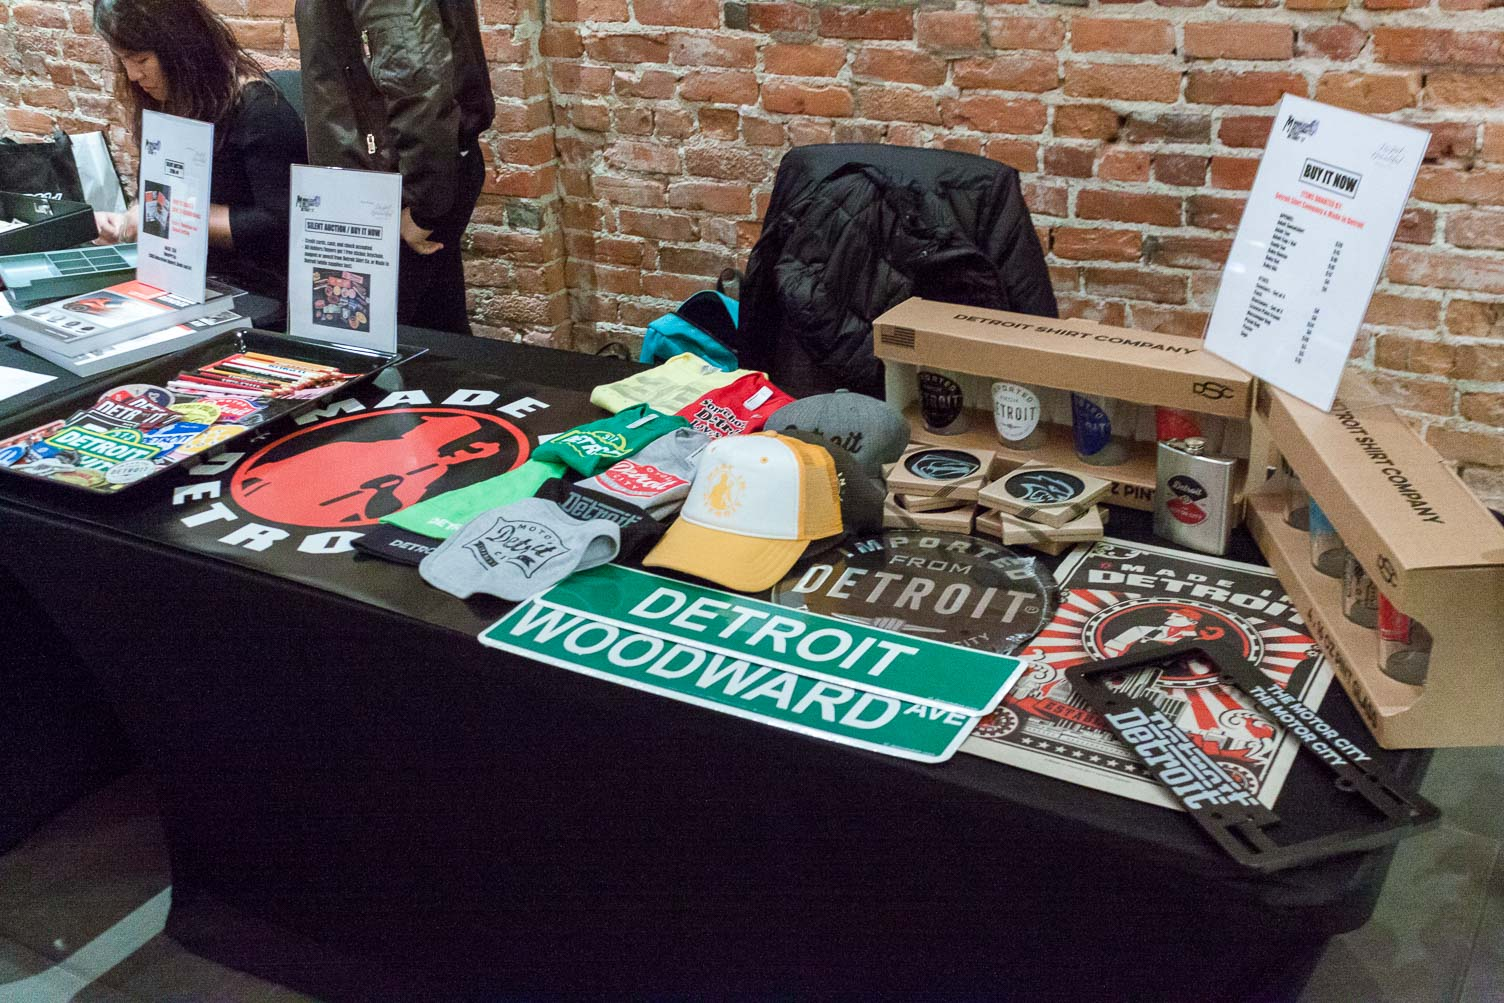 Some of our Buy It Now items donated by Detroit Shirt Co. & Made in Detroit!